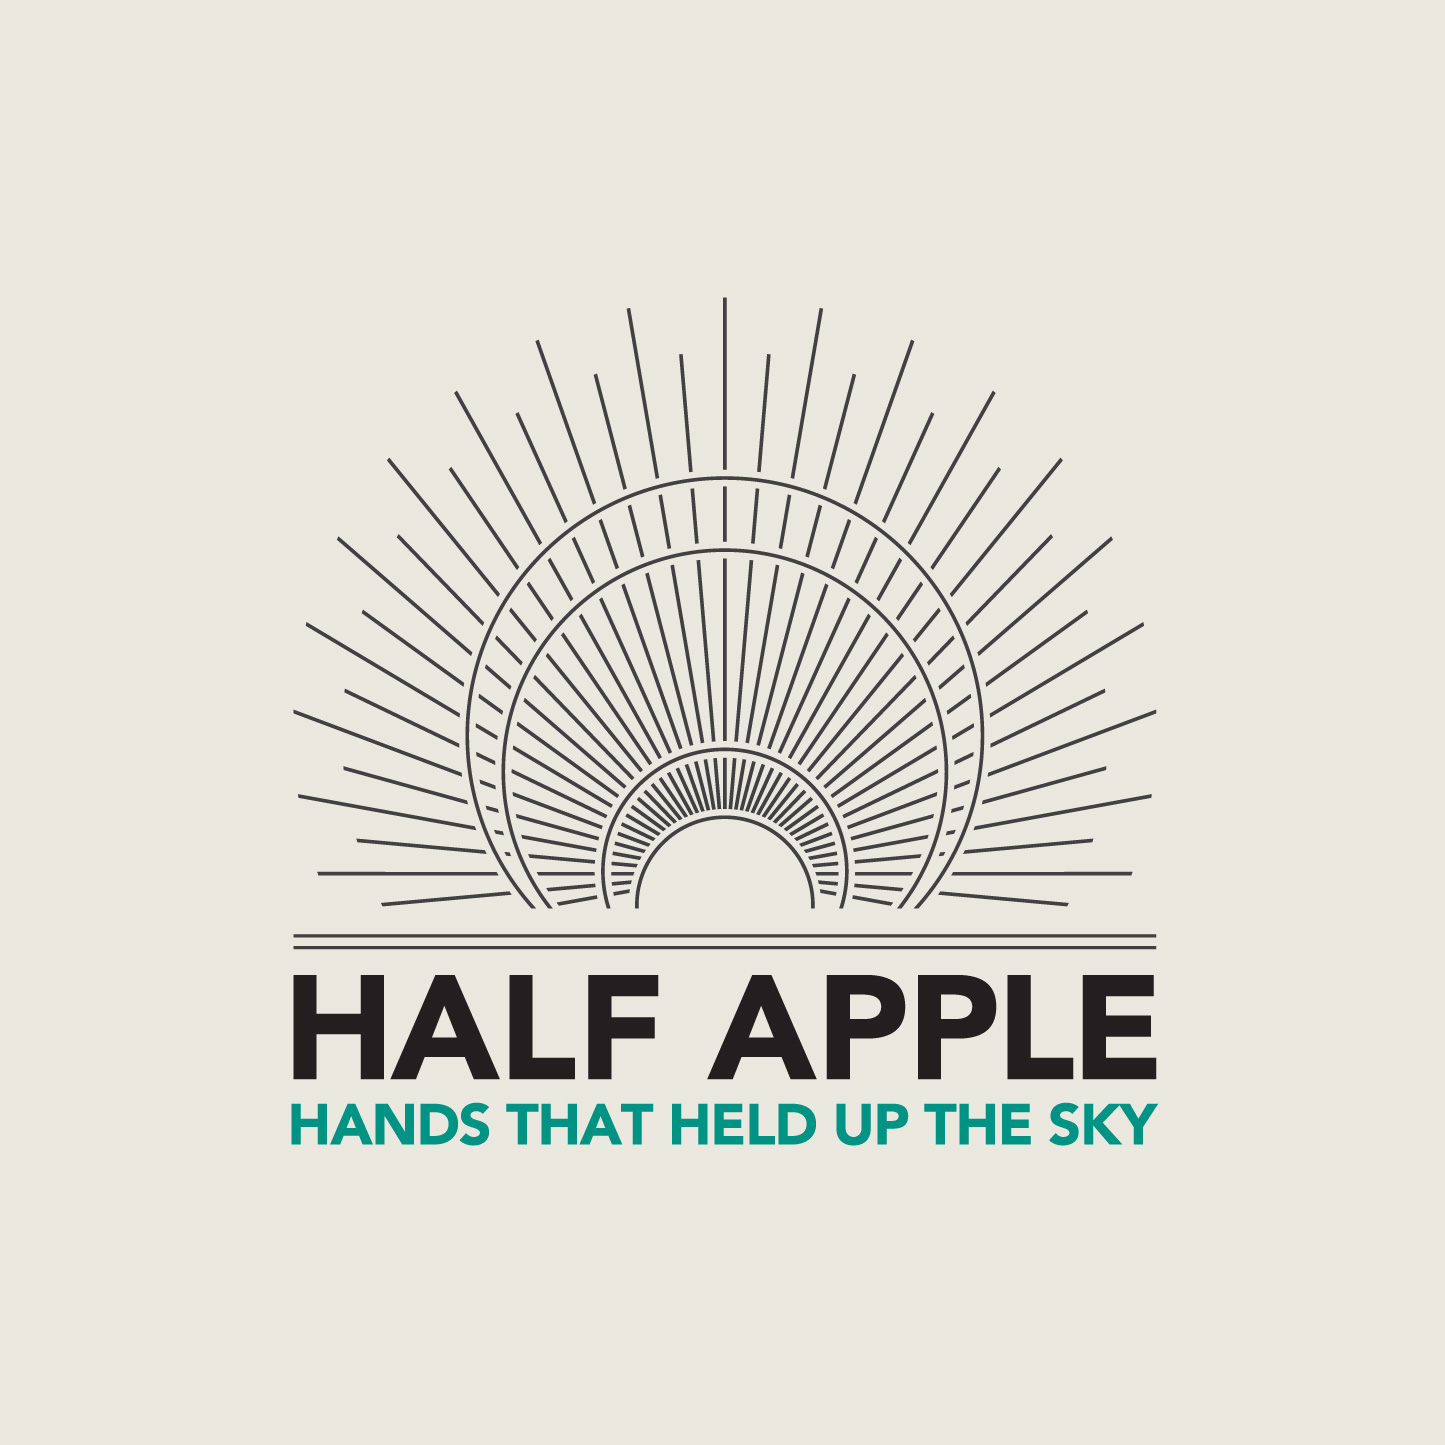 Half Apple: Hands That Held Up The Sky